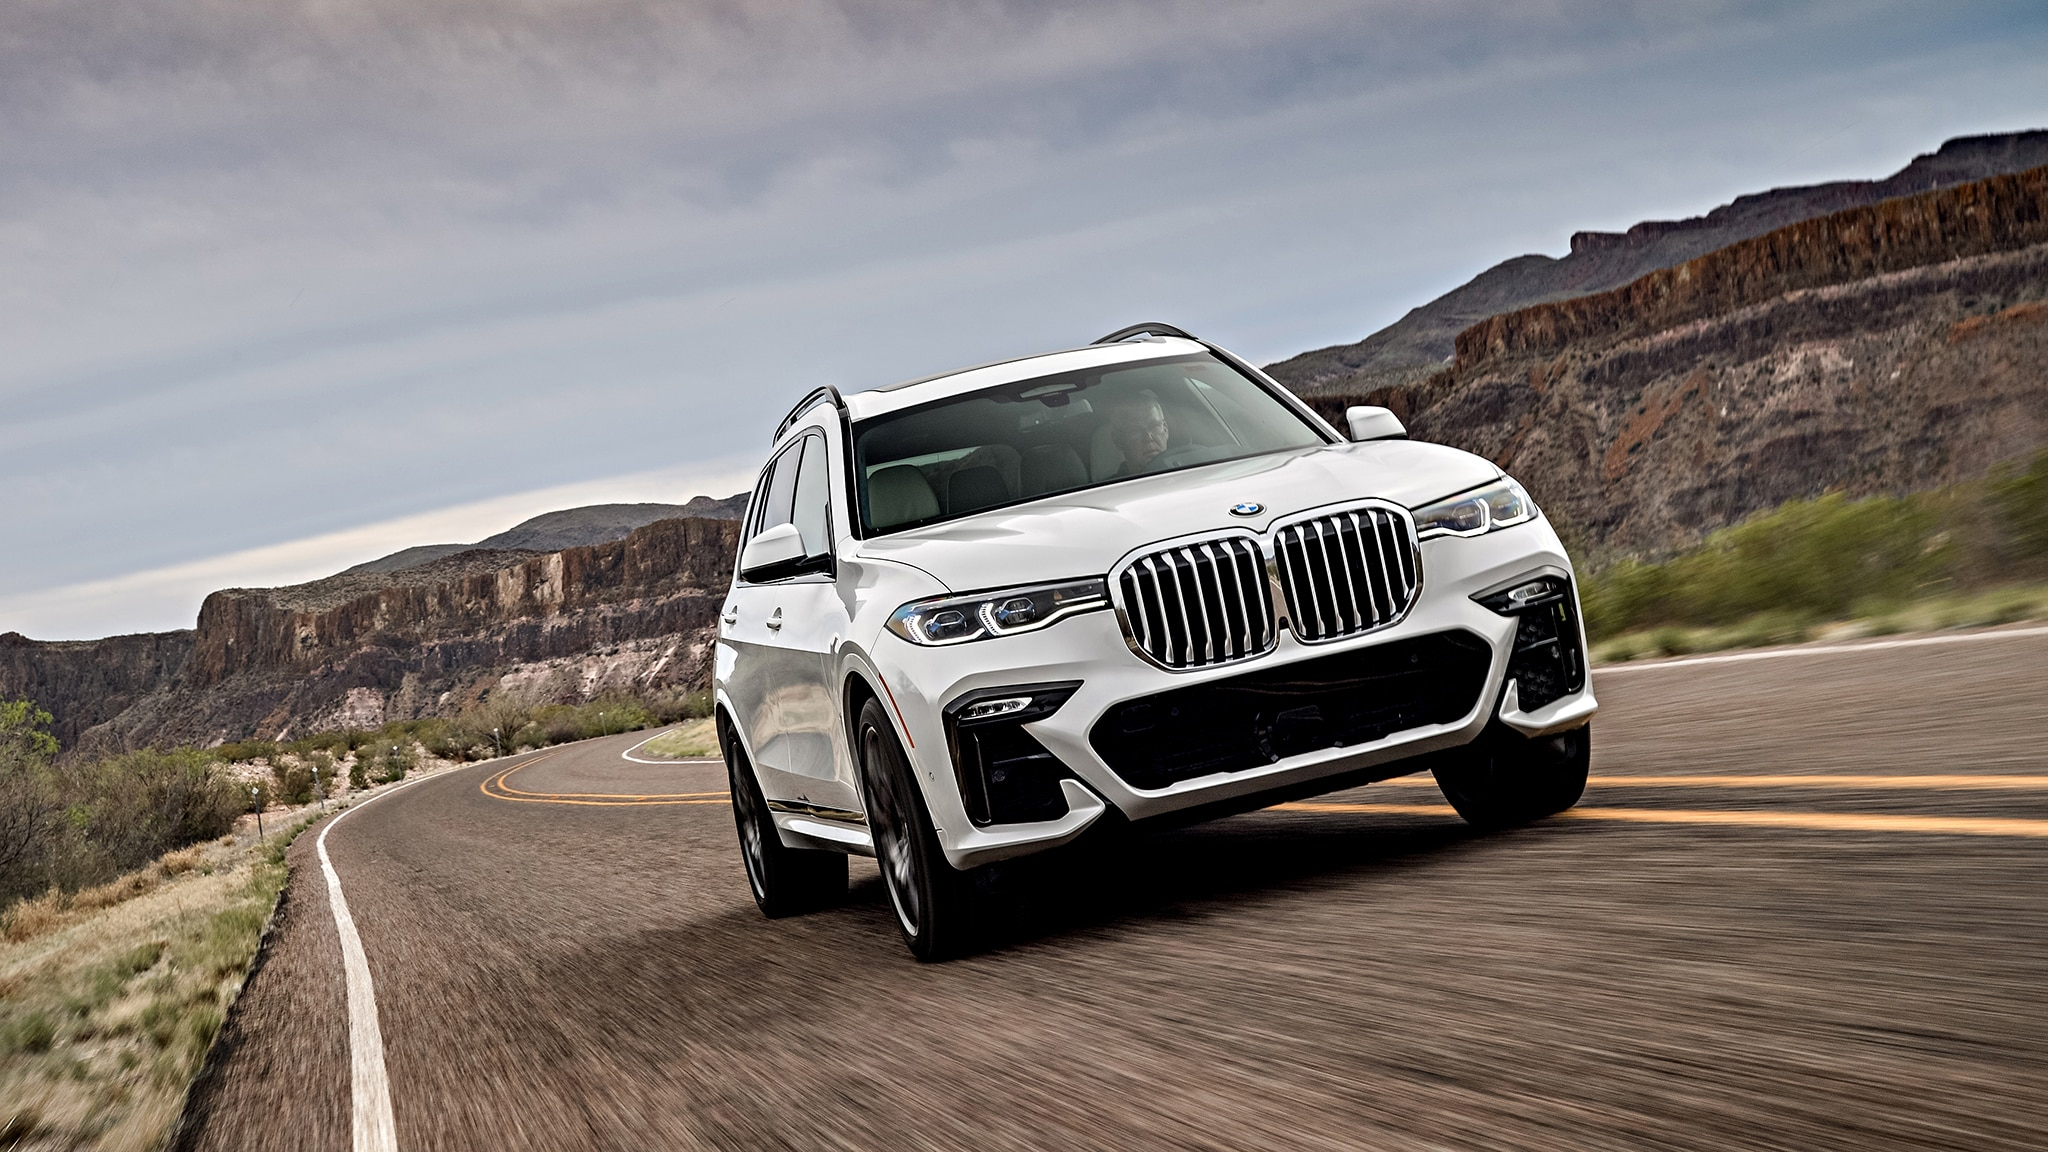 2019 BMW X7 First Drive: The 7 Series Of Luxury SUVs